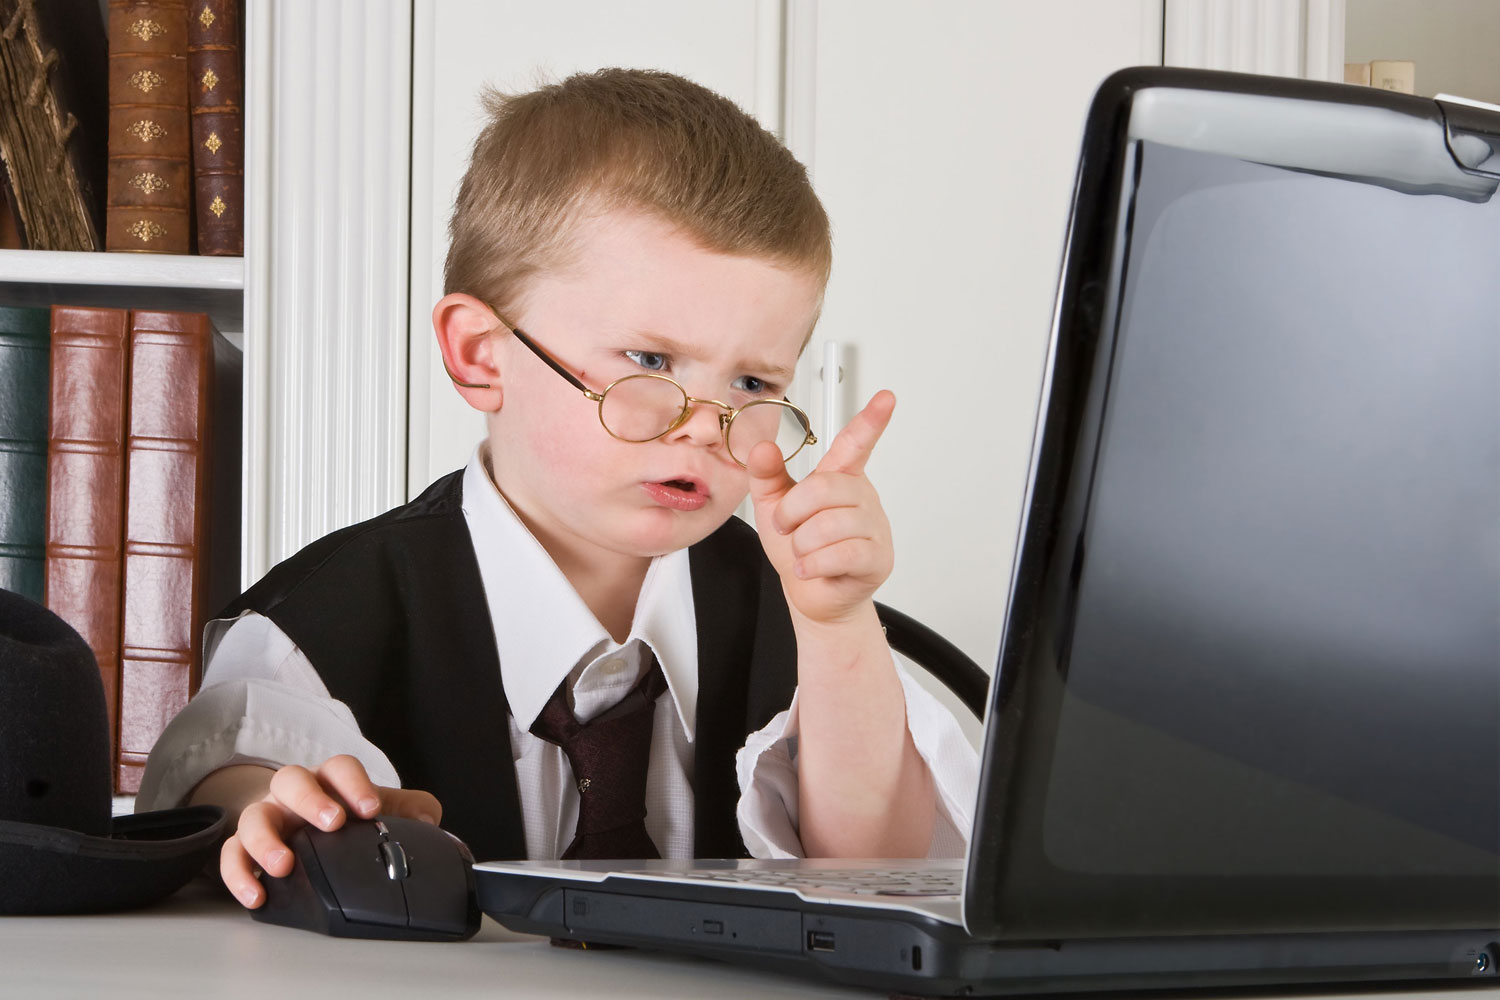 kid-puzzled-by-the-old-internet-child-computer